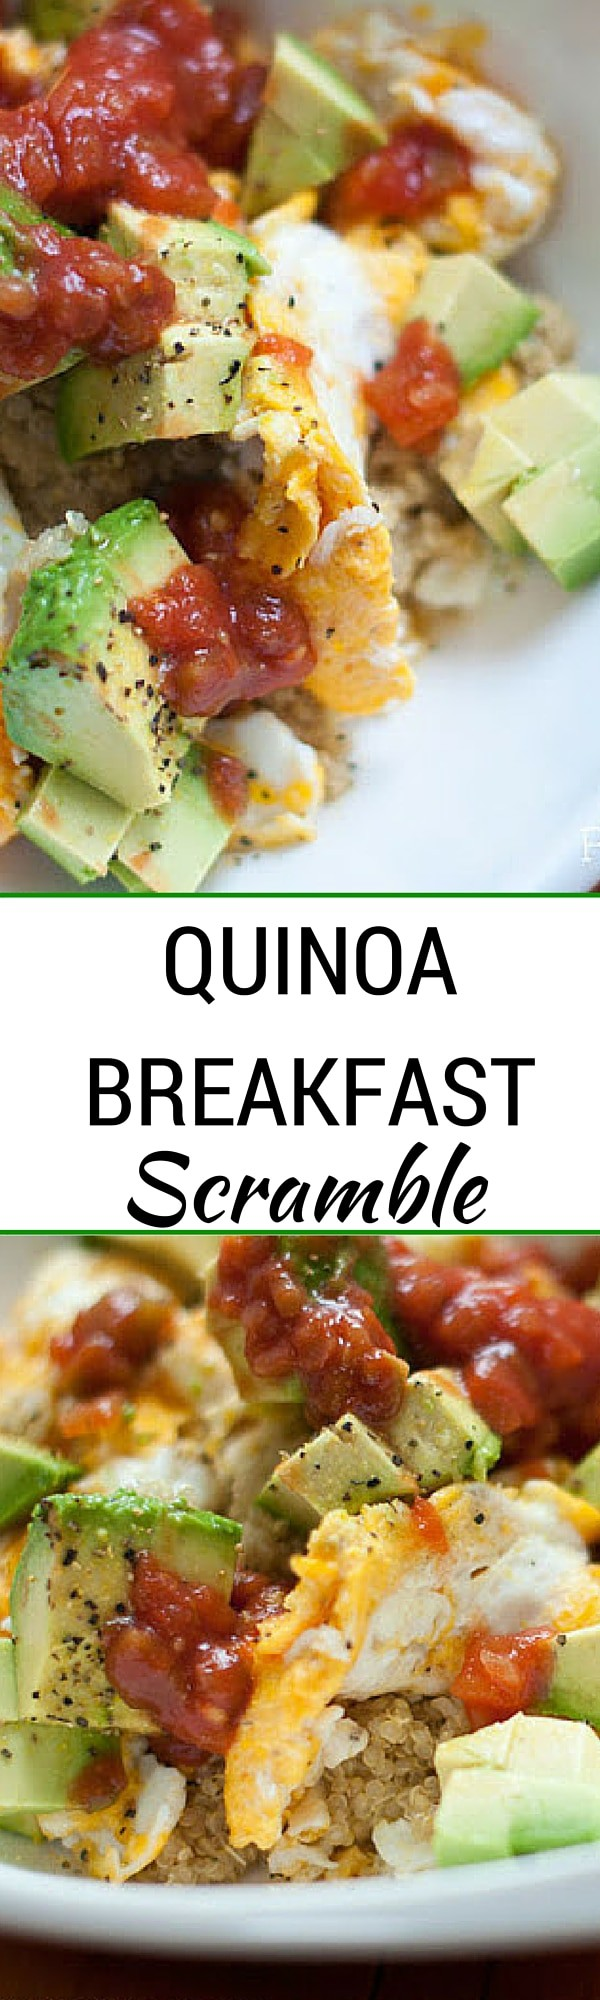 Quinoa Breakfast Scramble - This super easy breakfast recipe is the perfect way to jump start your day! With quinoa, eggs, avocado and salsa your taste buds will thank you. - #breakfast #breakfastrecipes #quinoa #quinoabreakfast #healthybreakfast